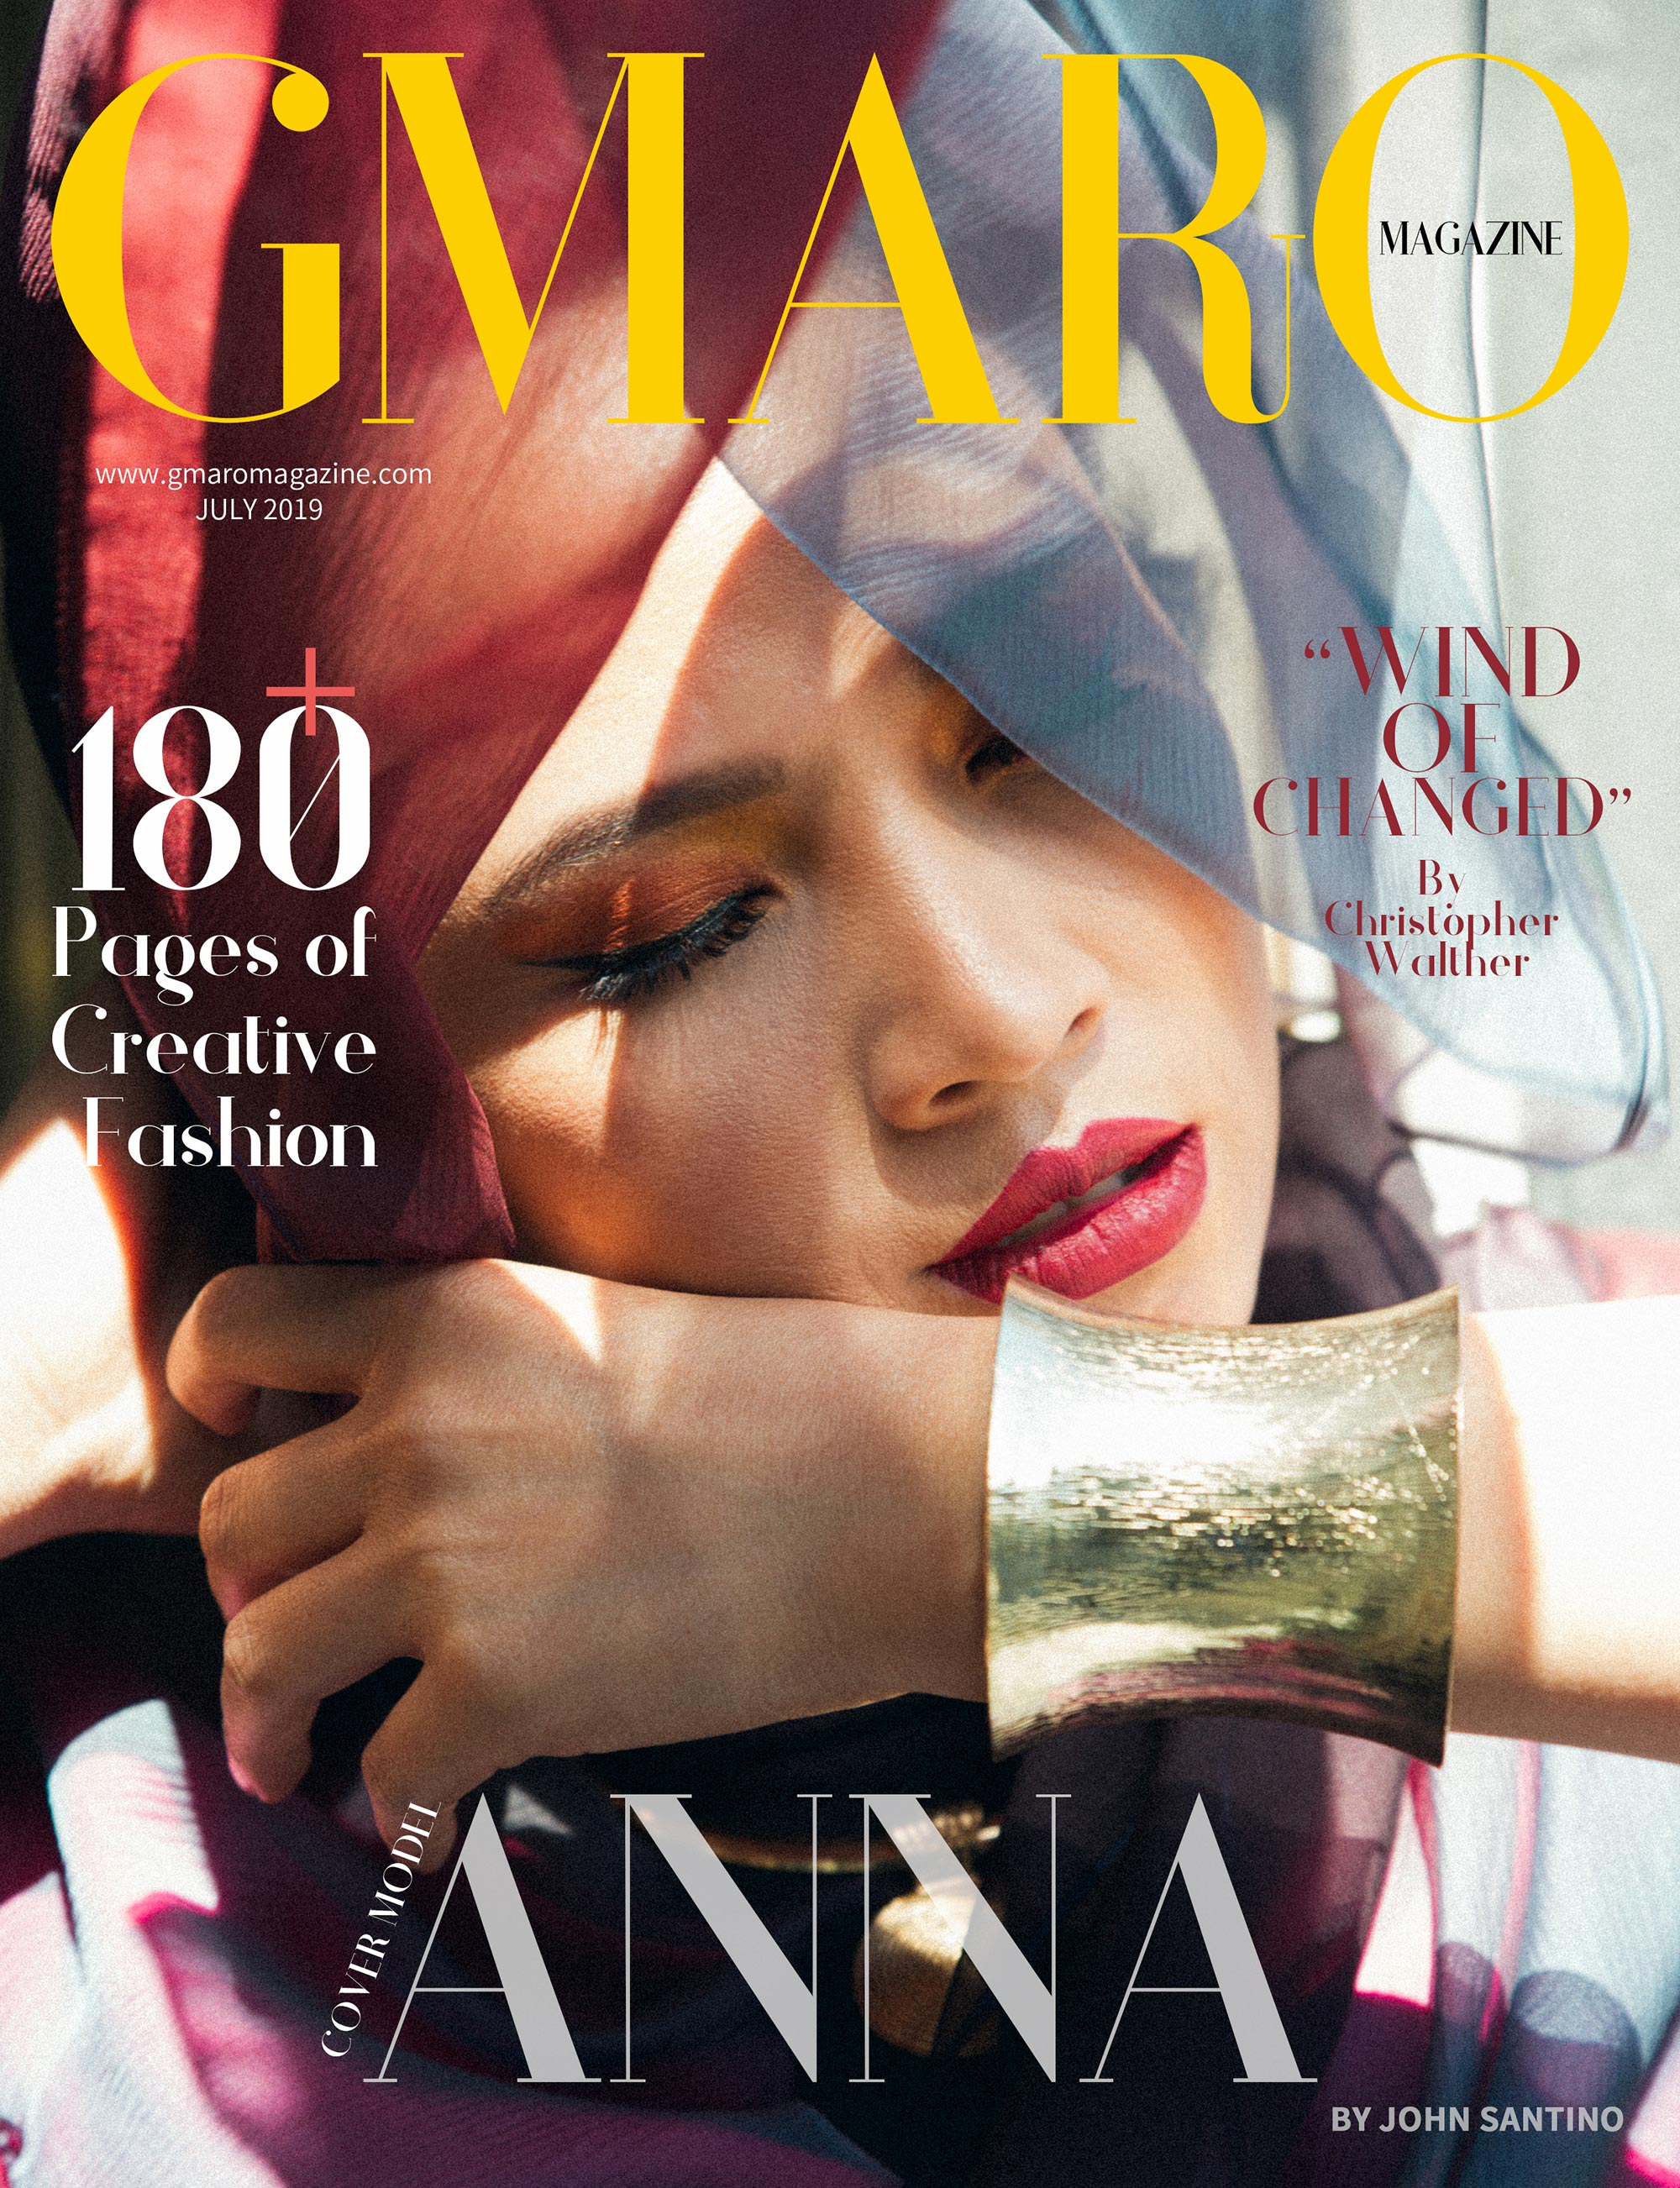 GMARO July 2019 Issue #17